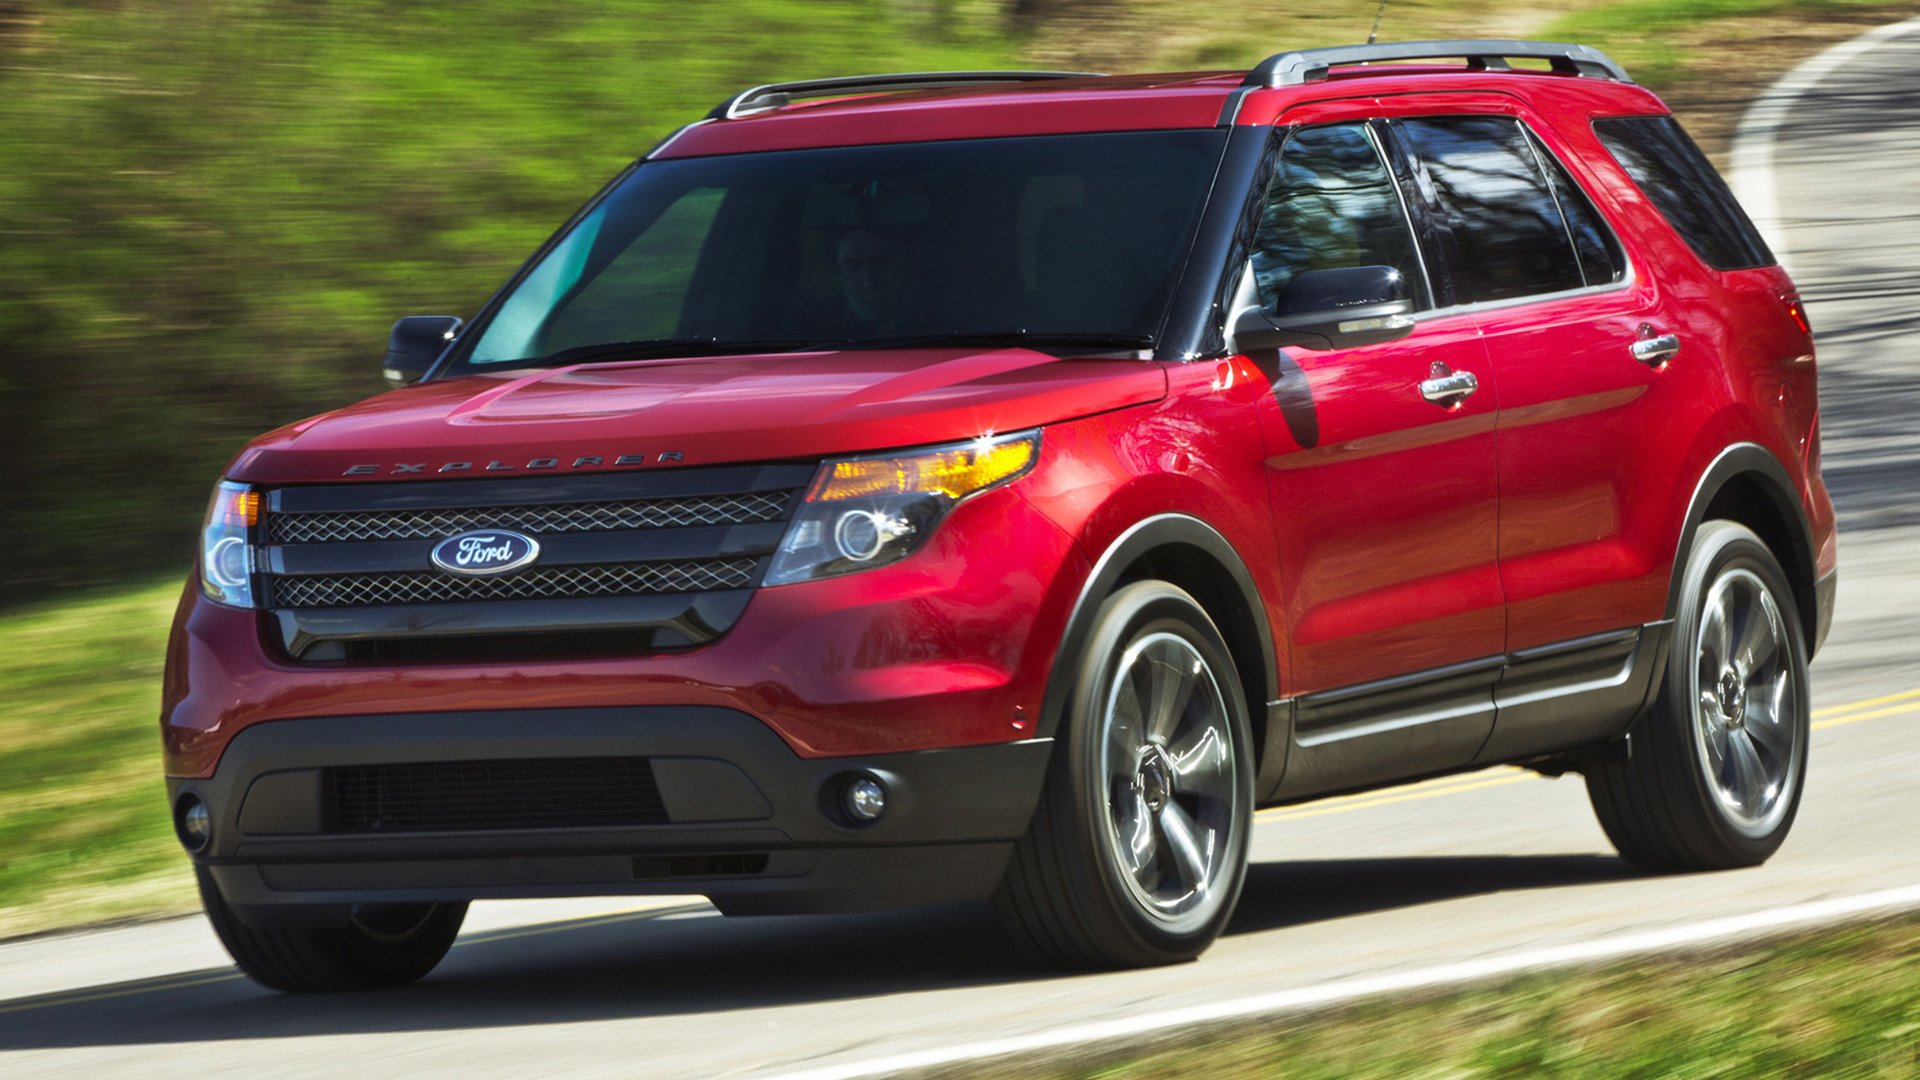 Ford Explorer Crossover in USA HD